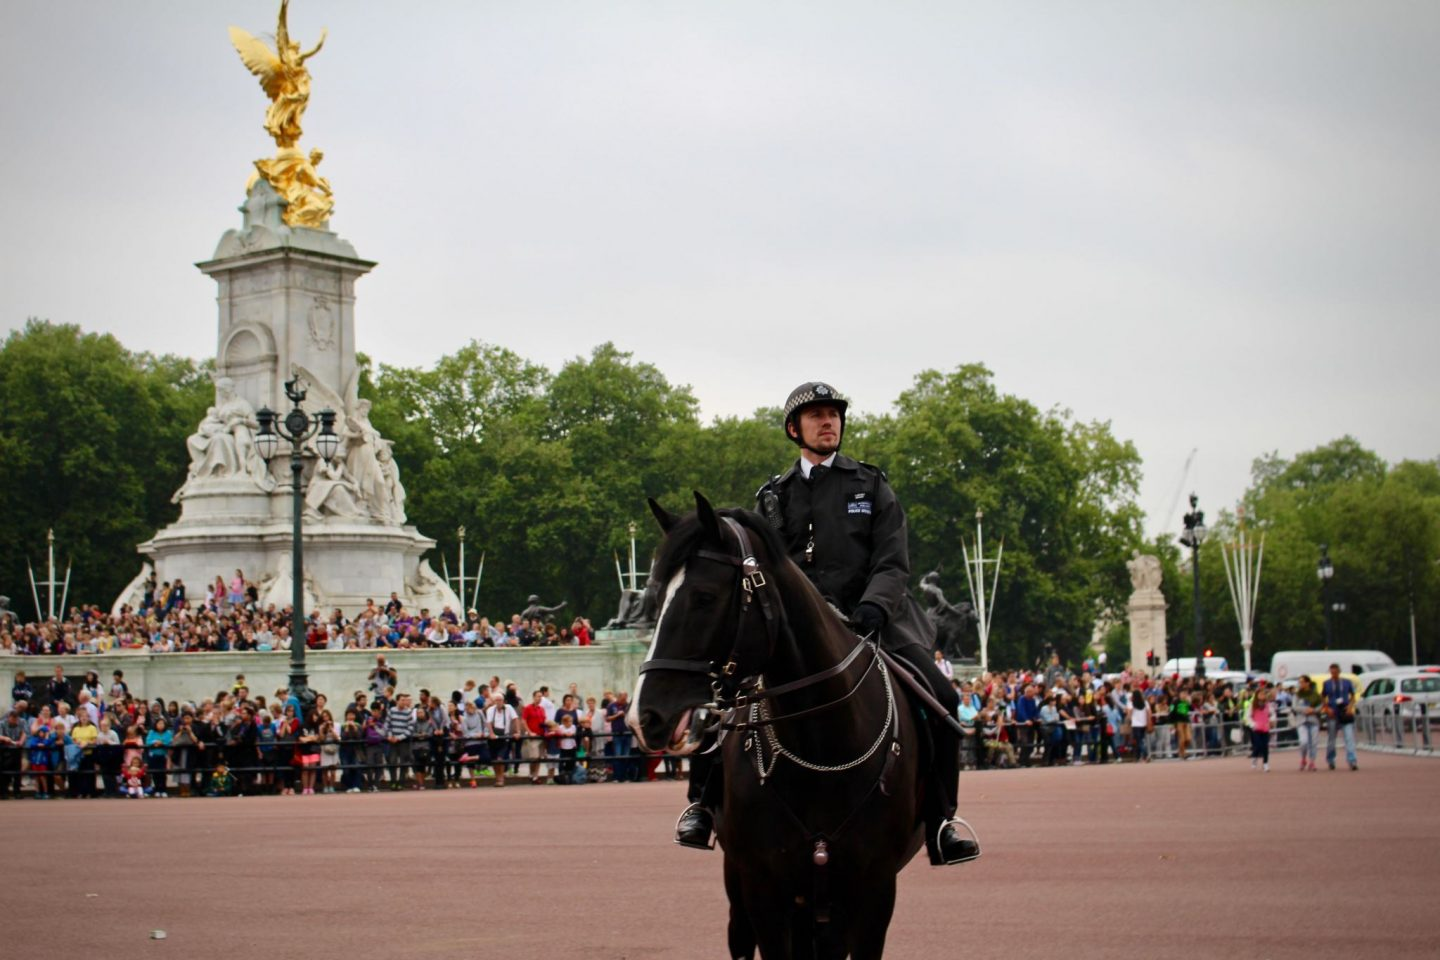 24 hours in Buckingham Palace